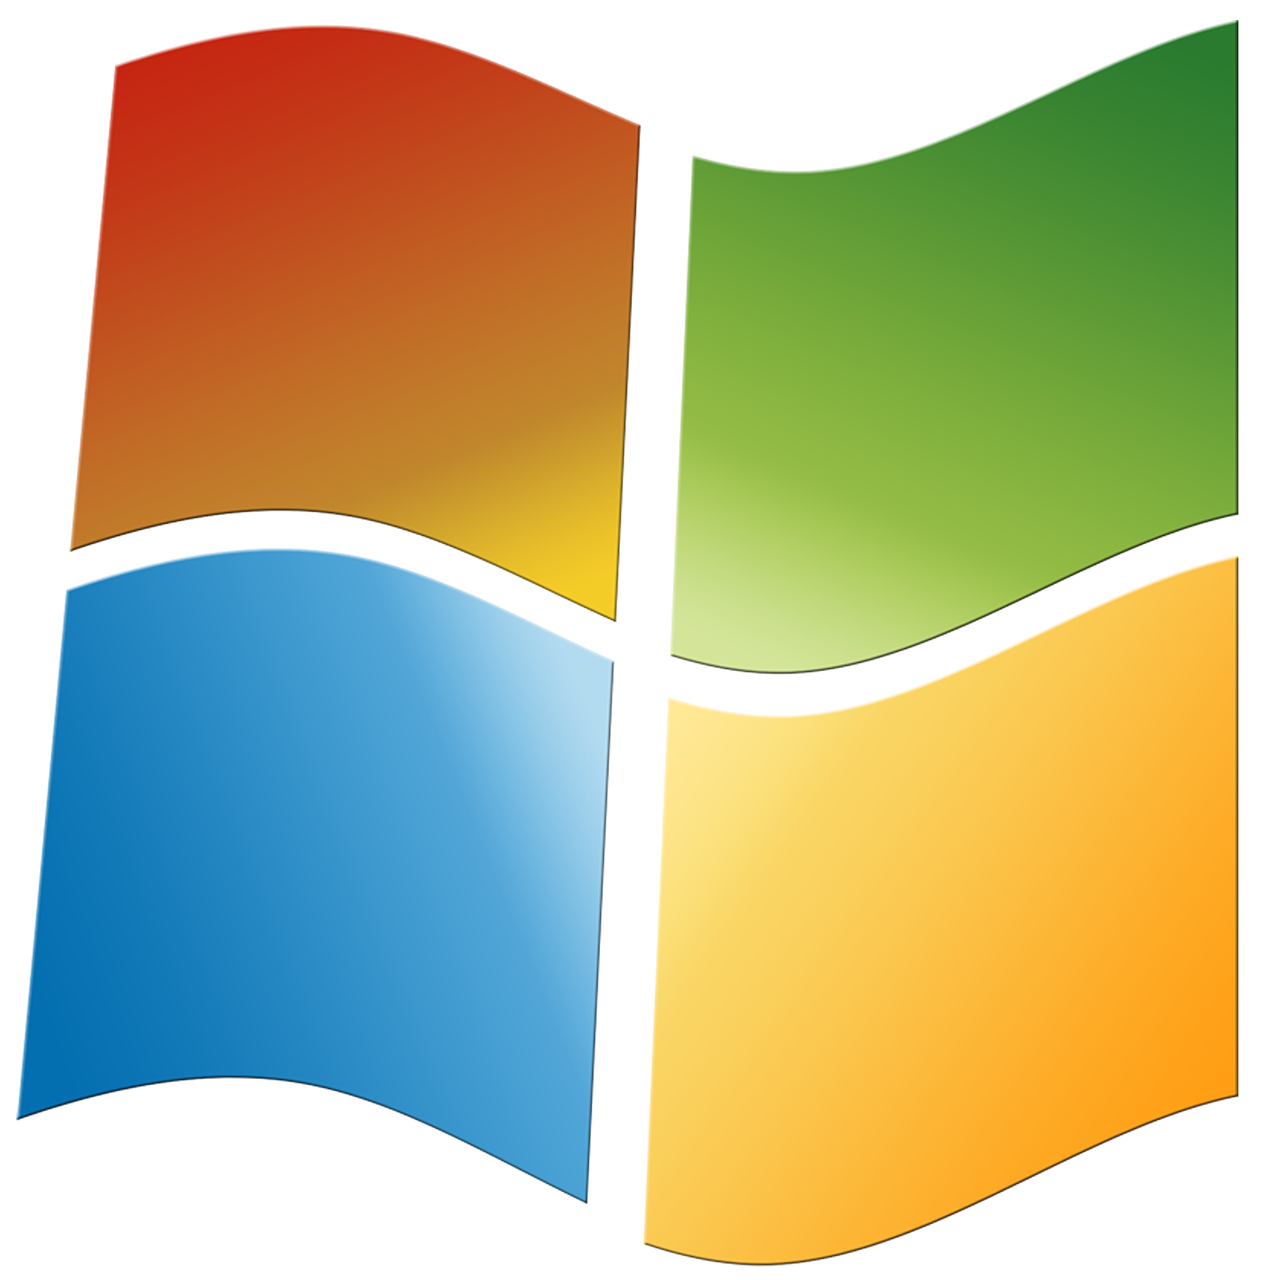 paso windows 7 a windows 10